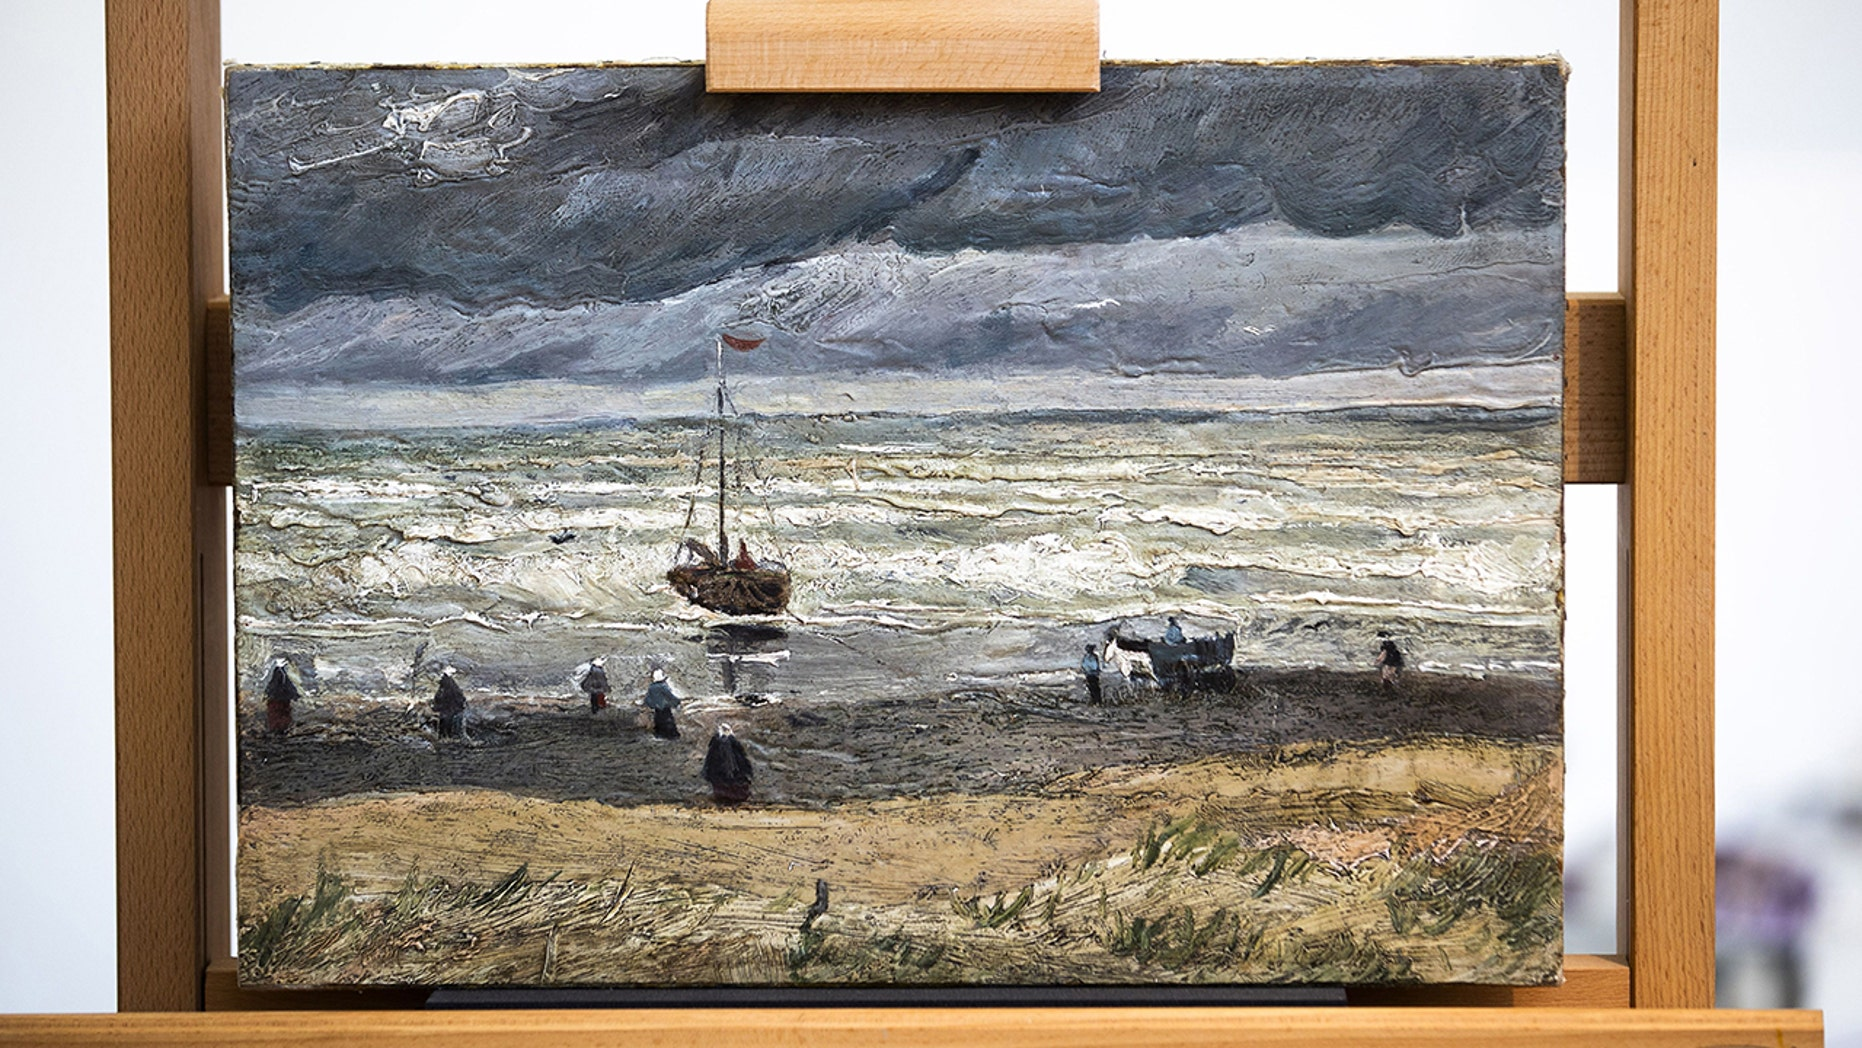 Westlake Legal Group Sea-at-Scheveningen Two stolen Vincent van Gogh paintings are back on display, 16 years after being swiped from museum Kathleen Joyce fox-news/world/world-regions/europe fox-news/world/crime fox-news/entertainment/genres/arts fox news fnc/world fnc article 90abd727-ede9-5dbf-b7ee-549202443767